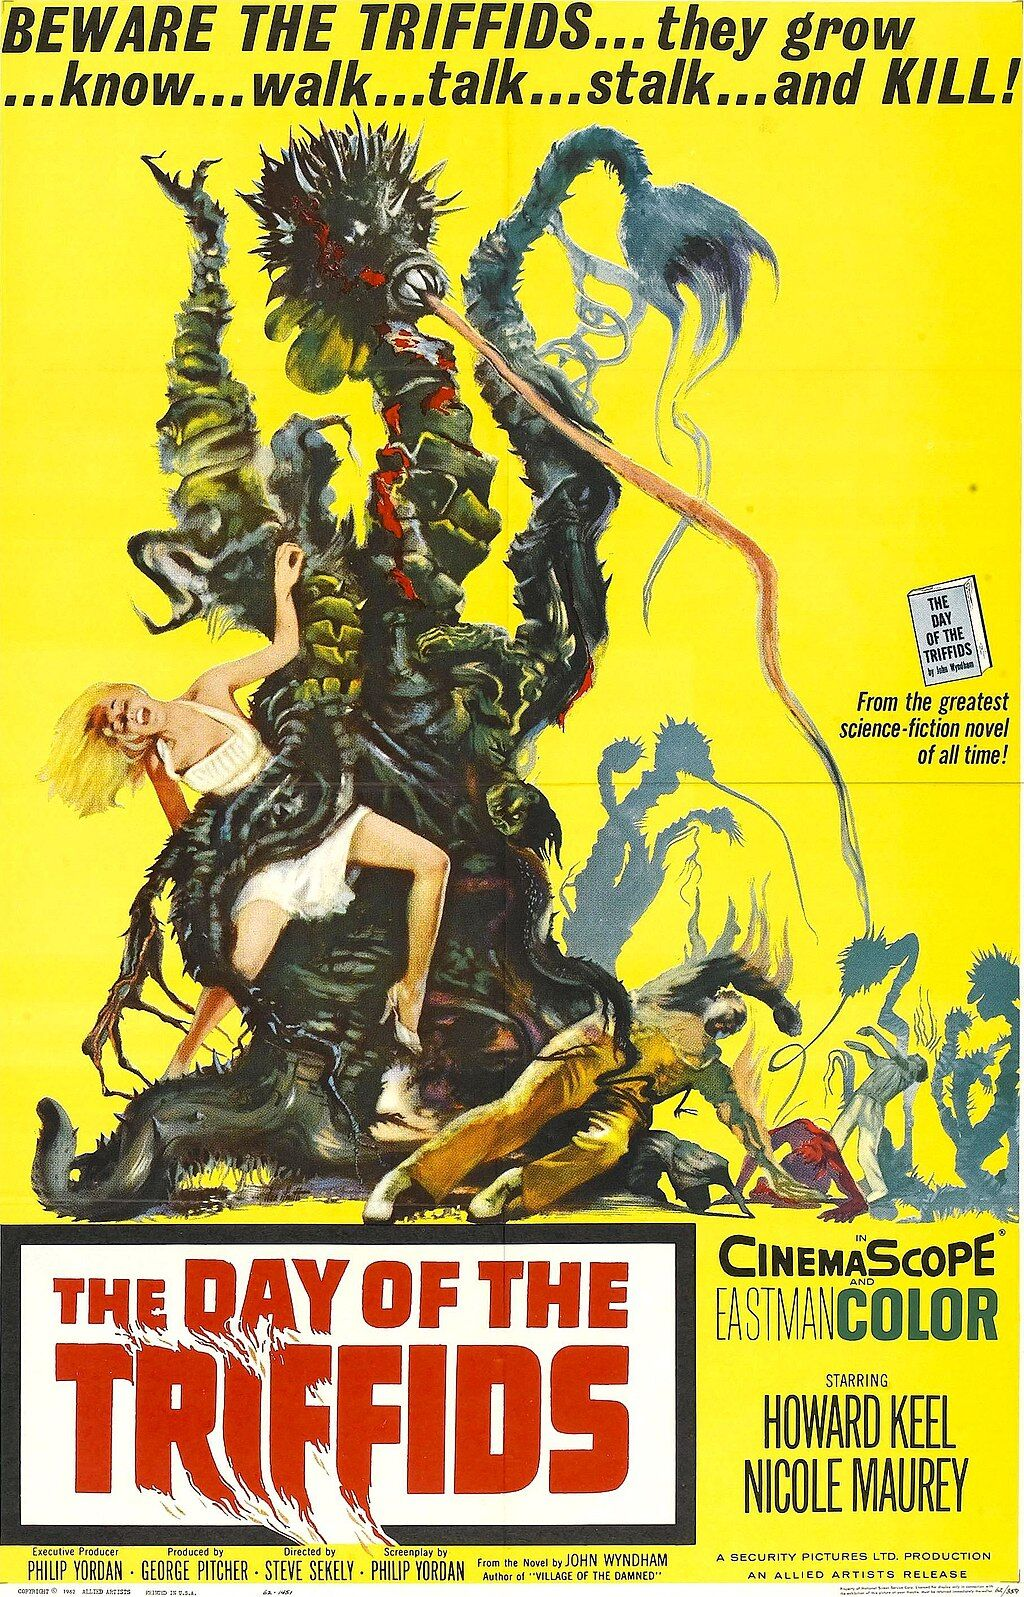 The Day of the Triffids theatrical poster, 1962. Image via Wikimedia Commons.